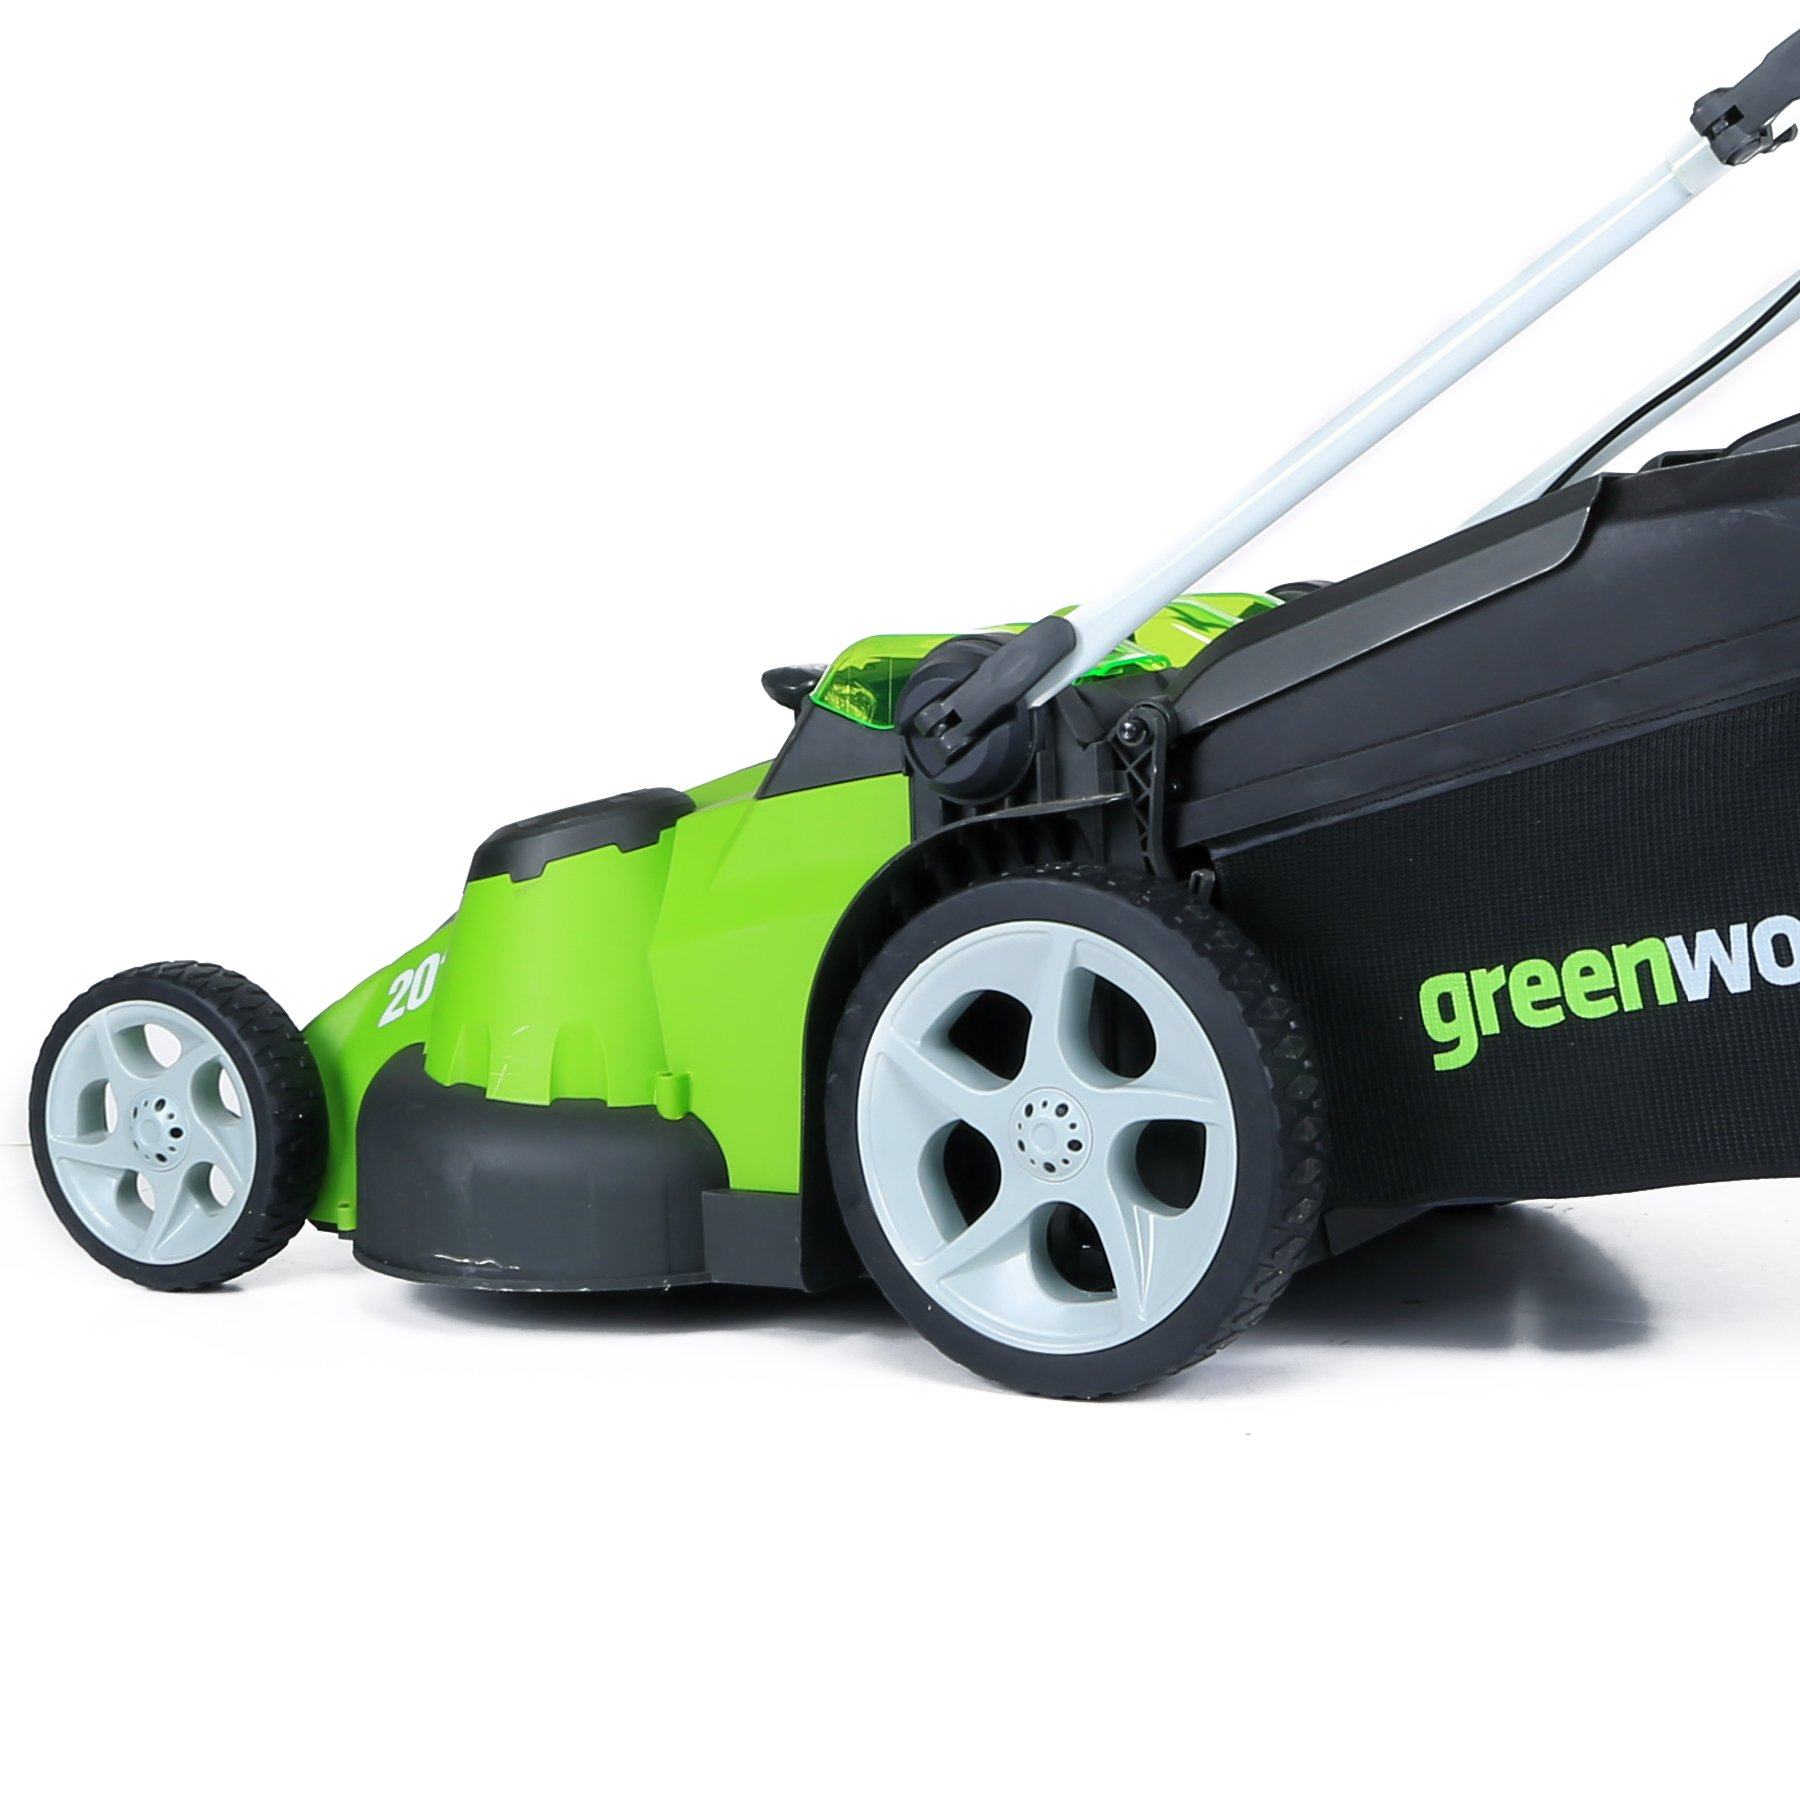 Greenworks 20-Inch 40V Twin Force Cordless Lawn Mower, 4.0 AH & 2.0 AH Batteries Included 25302 by Greenworks (Image #9)